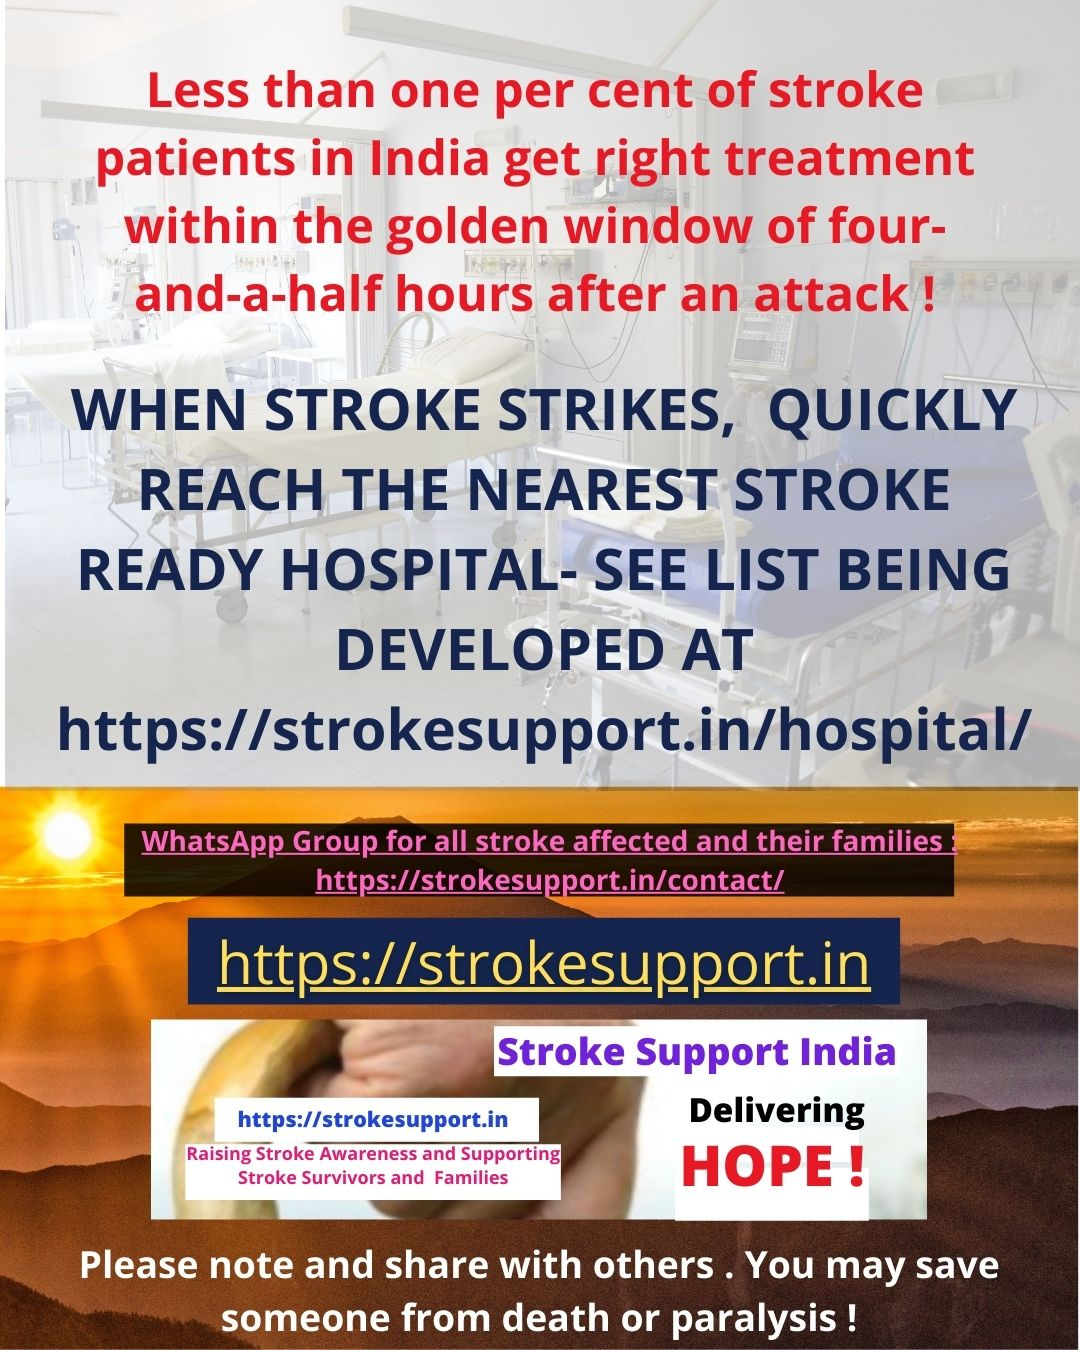 When Stroke Strikes, quickly reach the nearest Stroke Ready Hospital. For list see https://strokesupport.in/hospital/